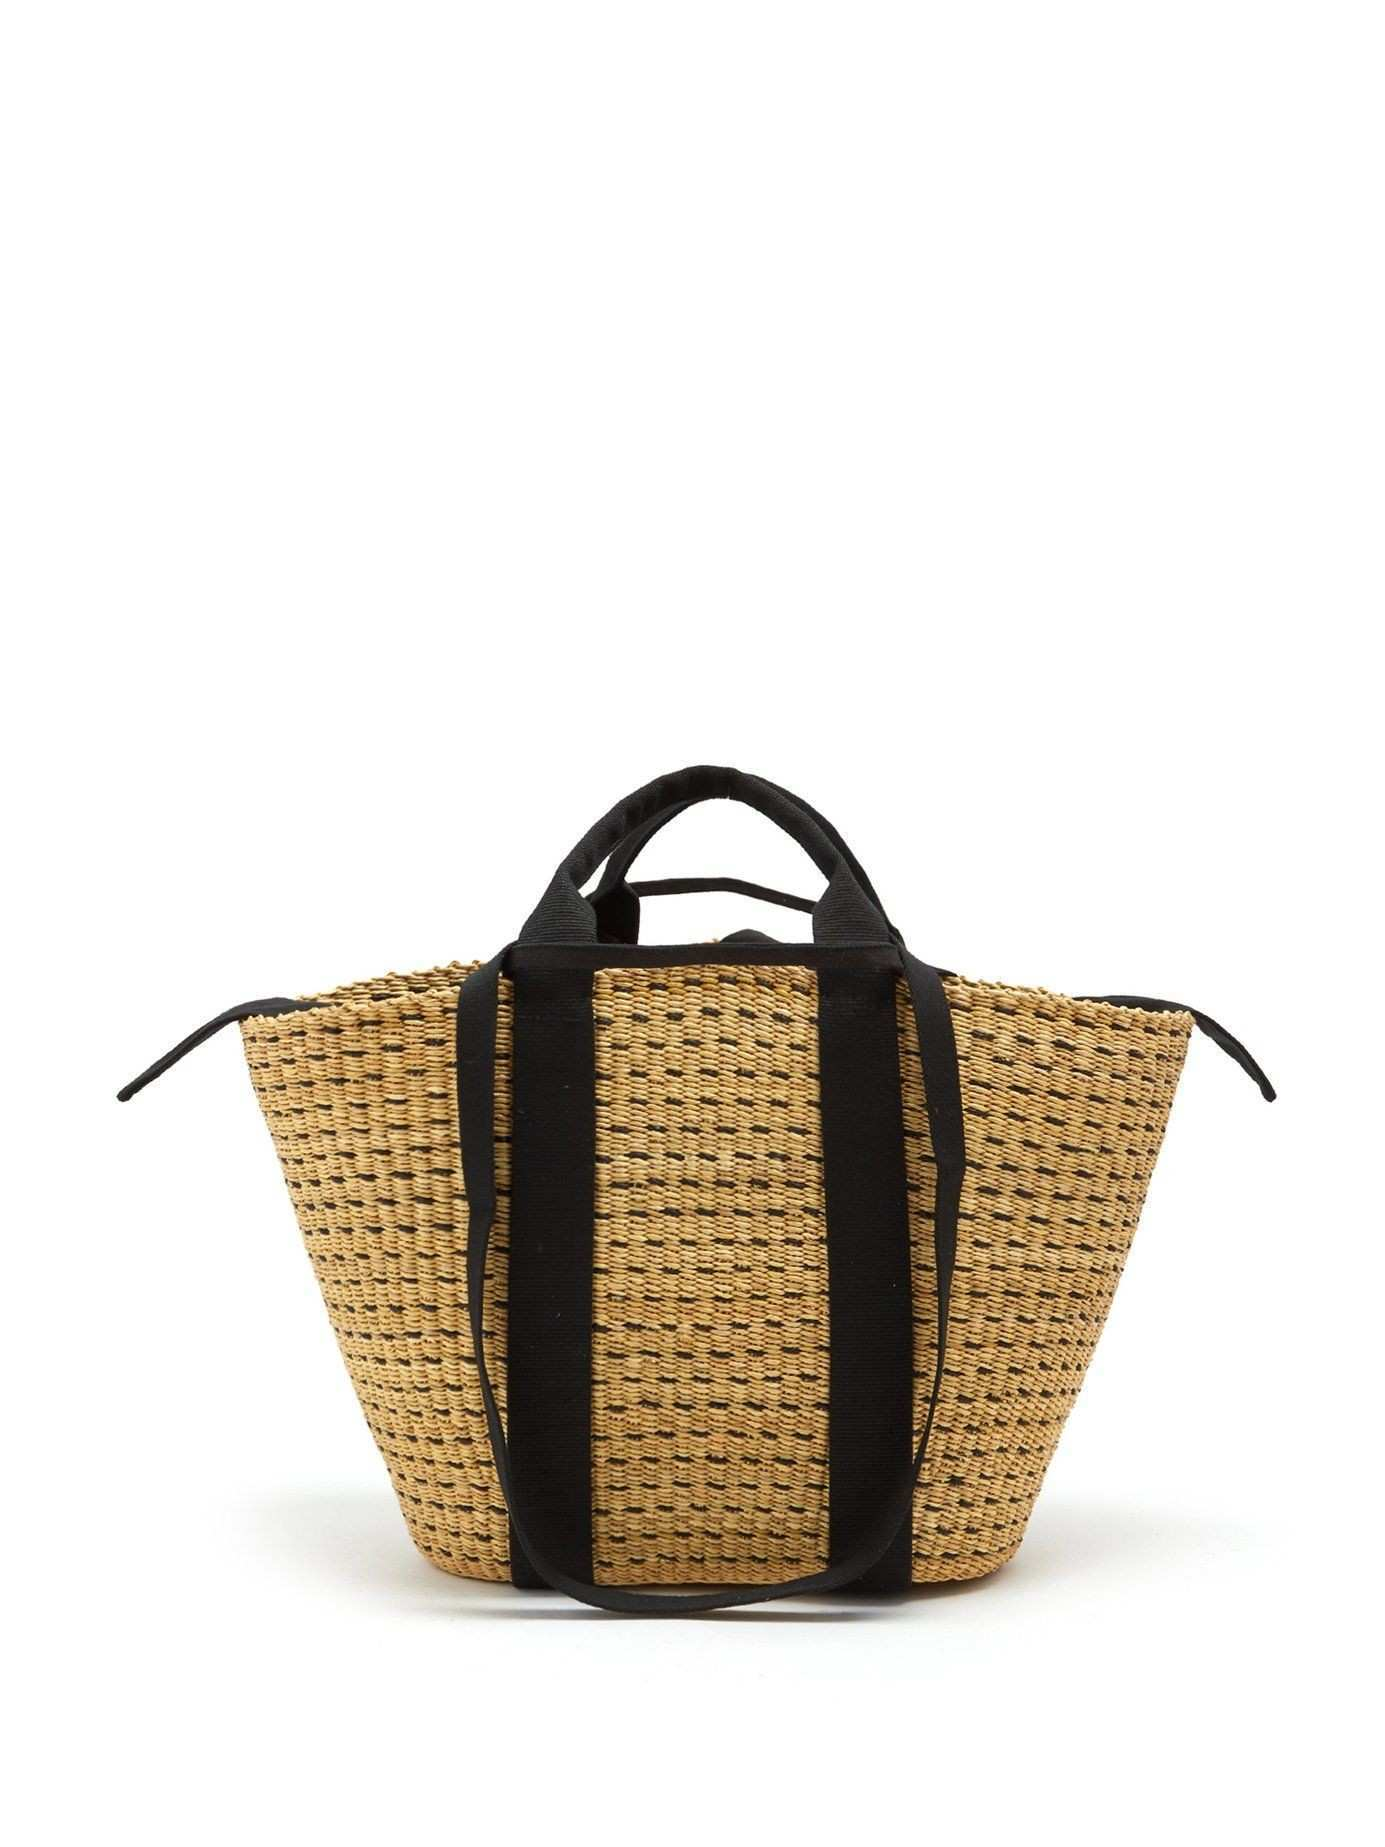 here to Muu± Blaise large canvas and hand woven straw tote